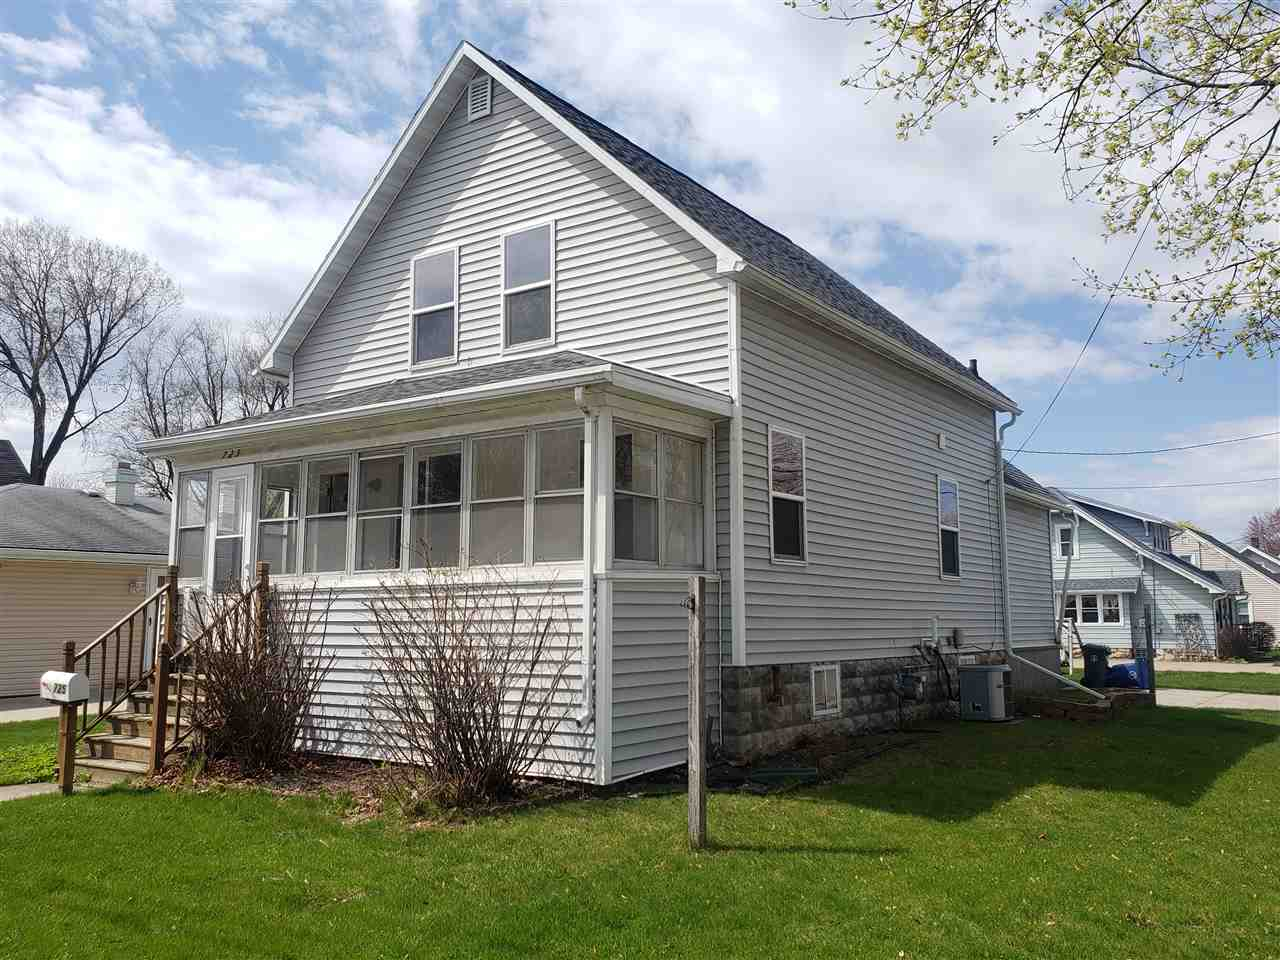 725 MADISON Street, Little Chute, Wisconsin 54140, 3 Bedrooms Bedrooms, ,1 BathroomBathrooms,Single Family,For Sale,725 MADISON Street,1.5,50238654